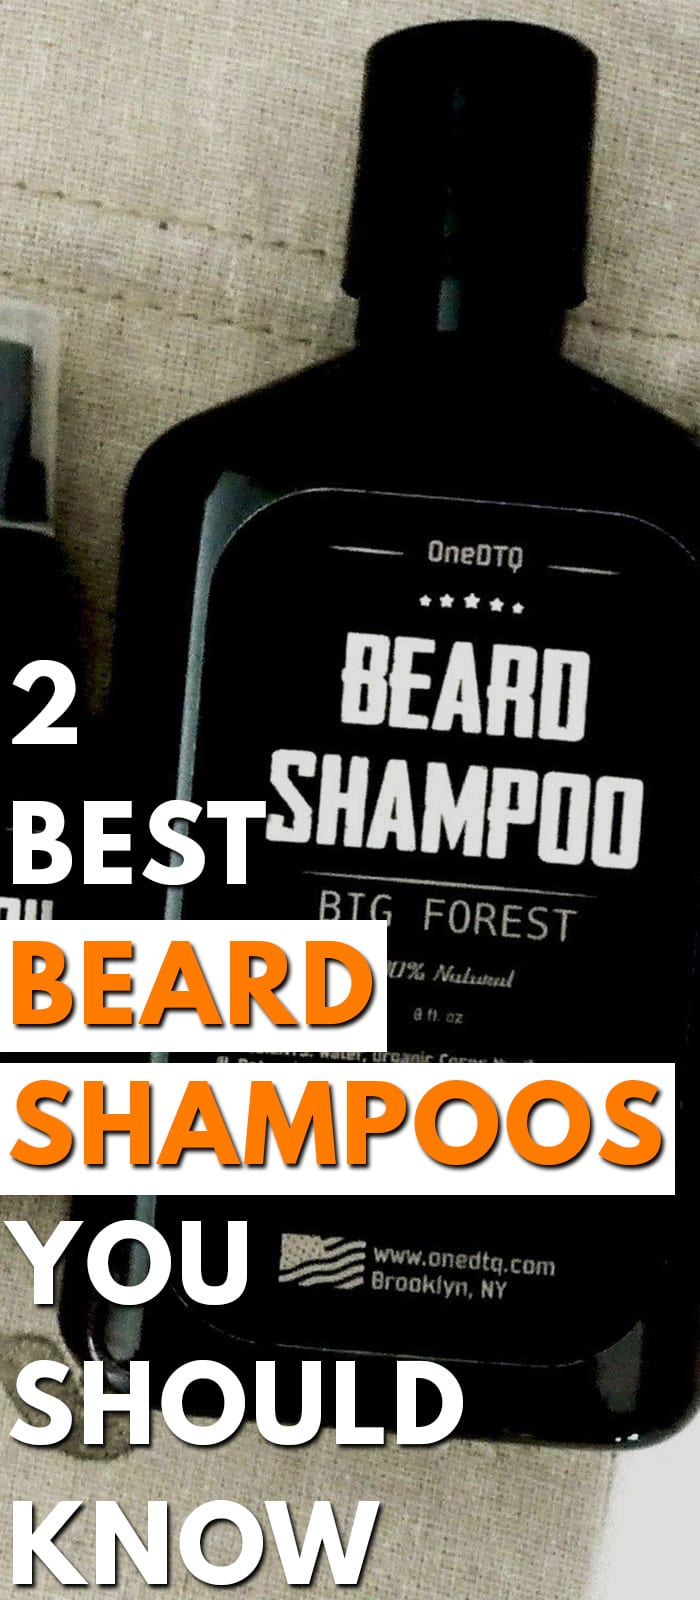 2-Best-Beard-Shampoos-You-Should-Know.